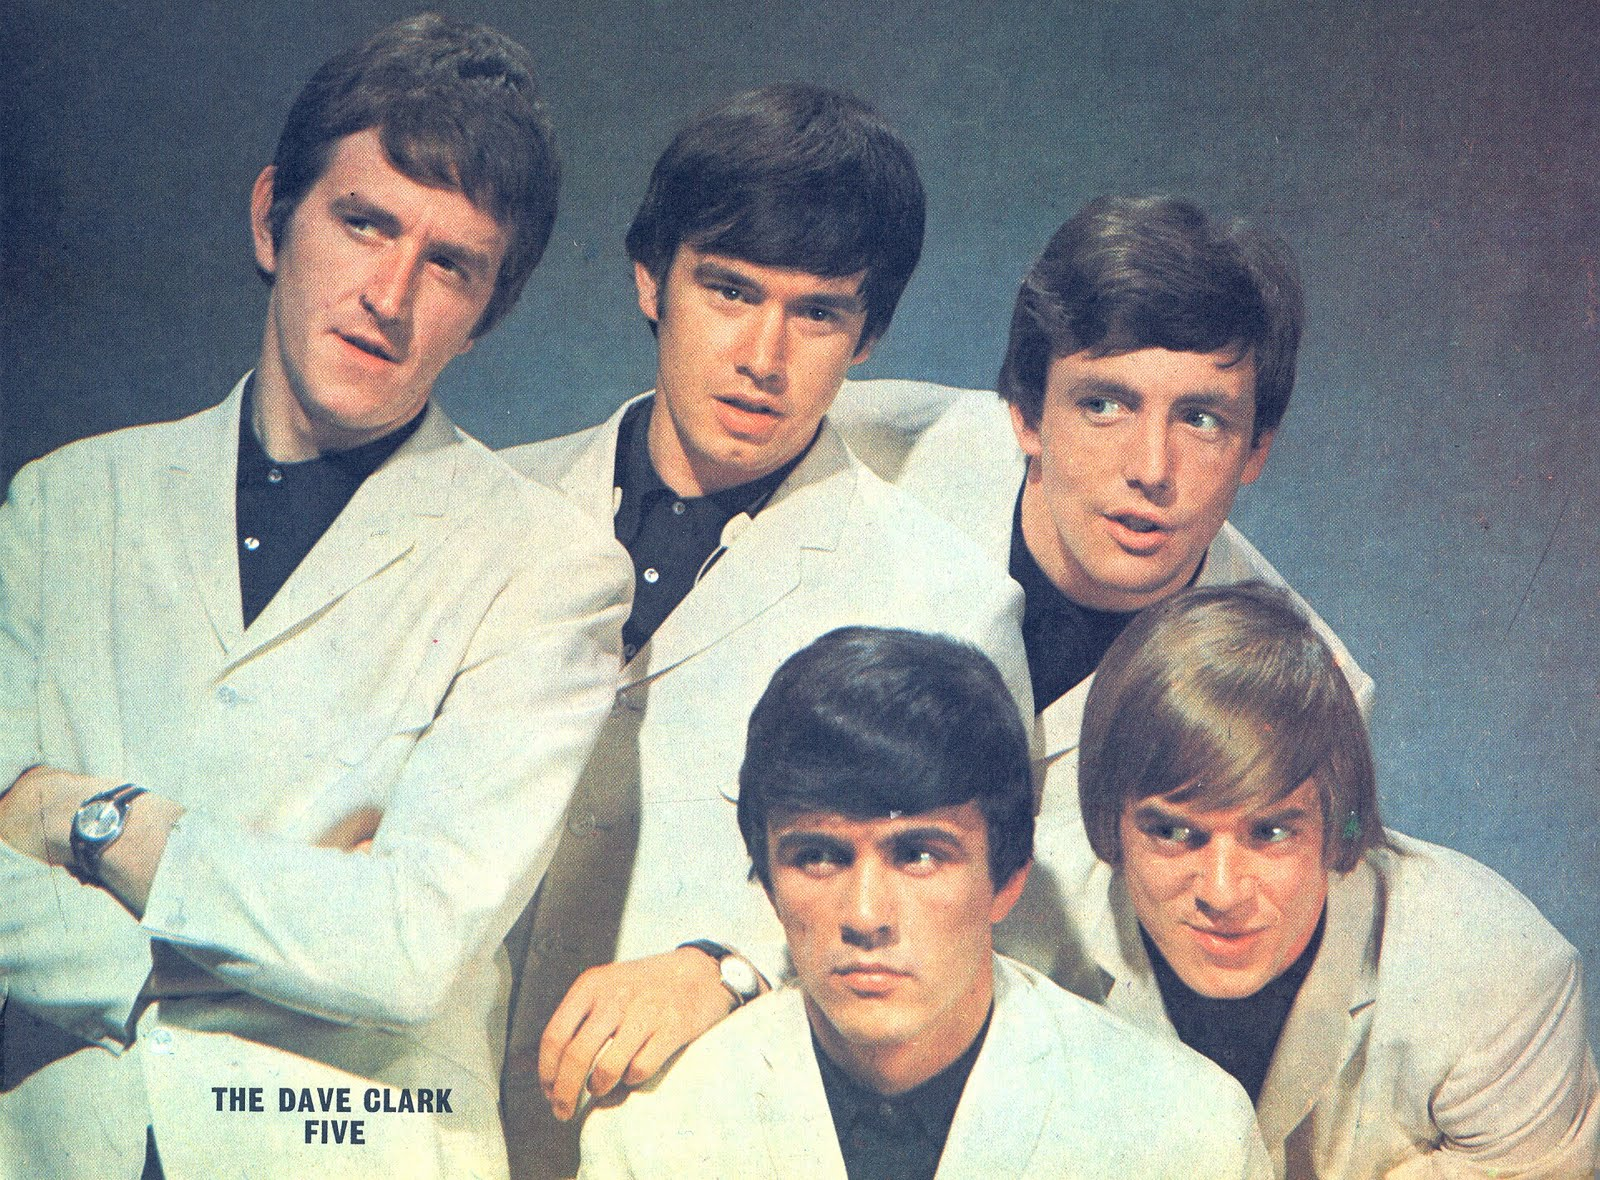 The Dave Clark Five - Everybody Get Together